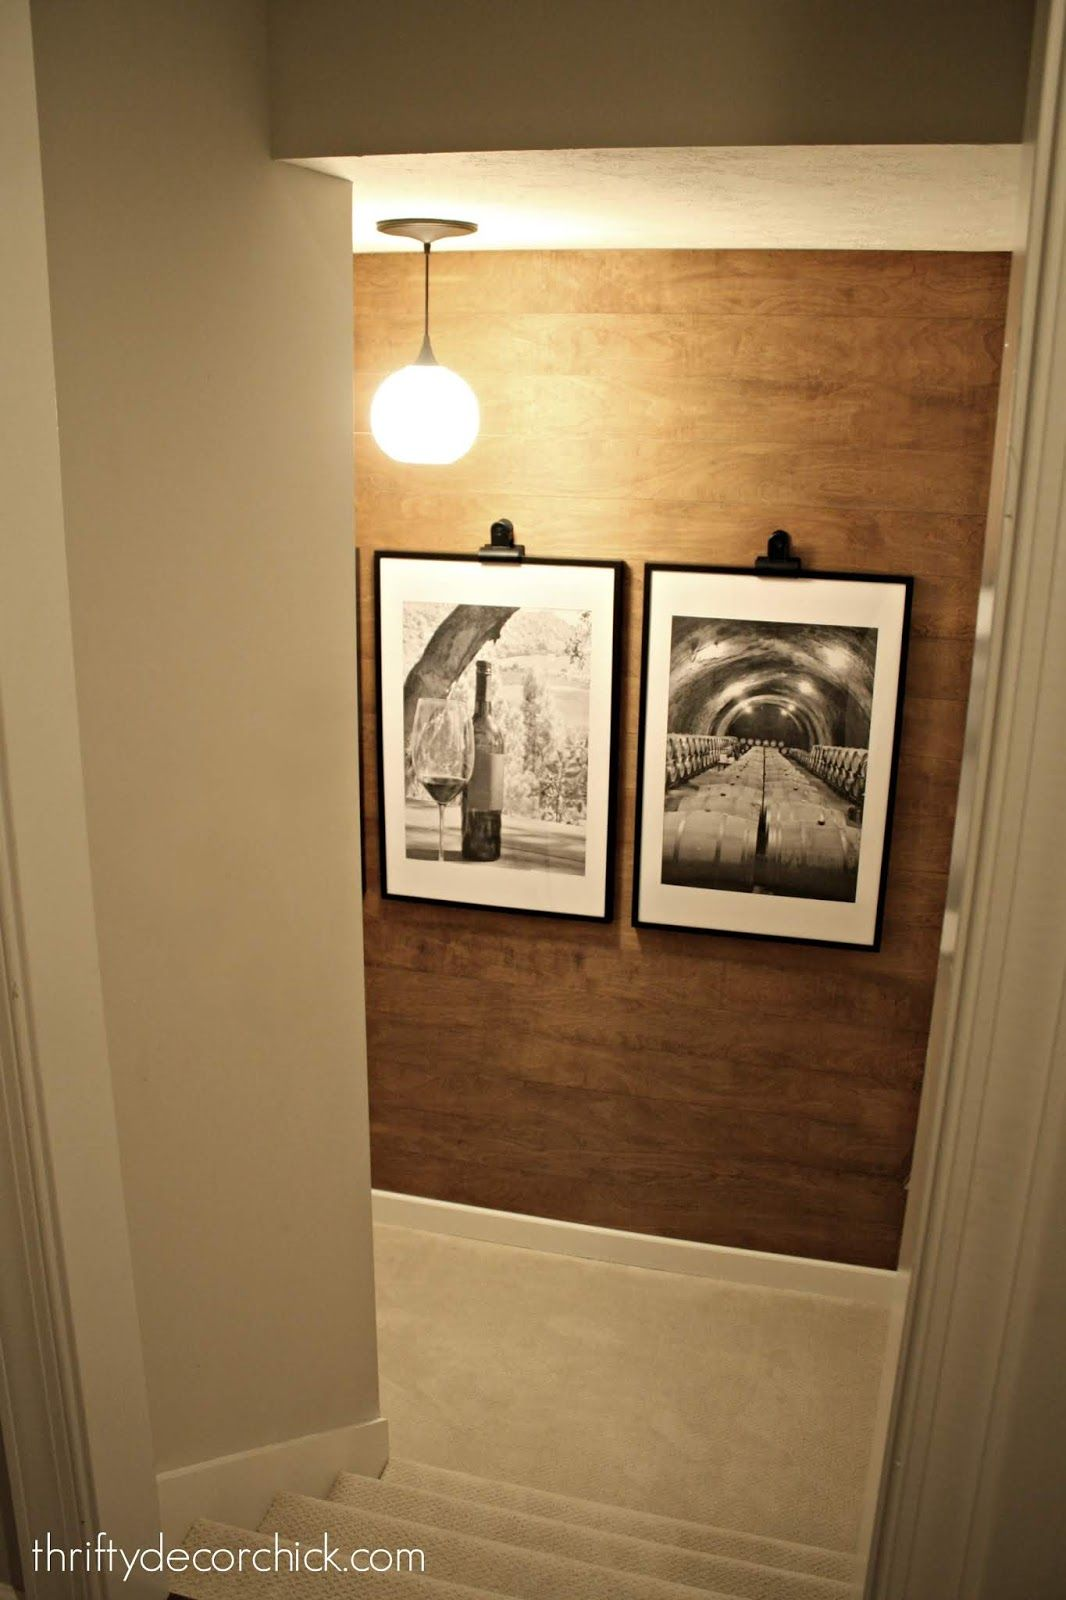 The pottery barn look for way less art pinterest wood accents